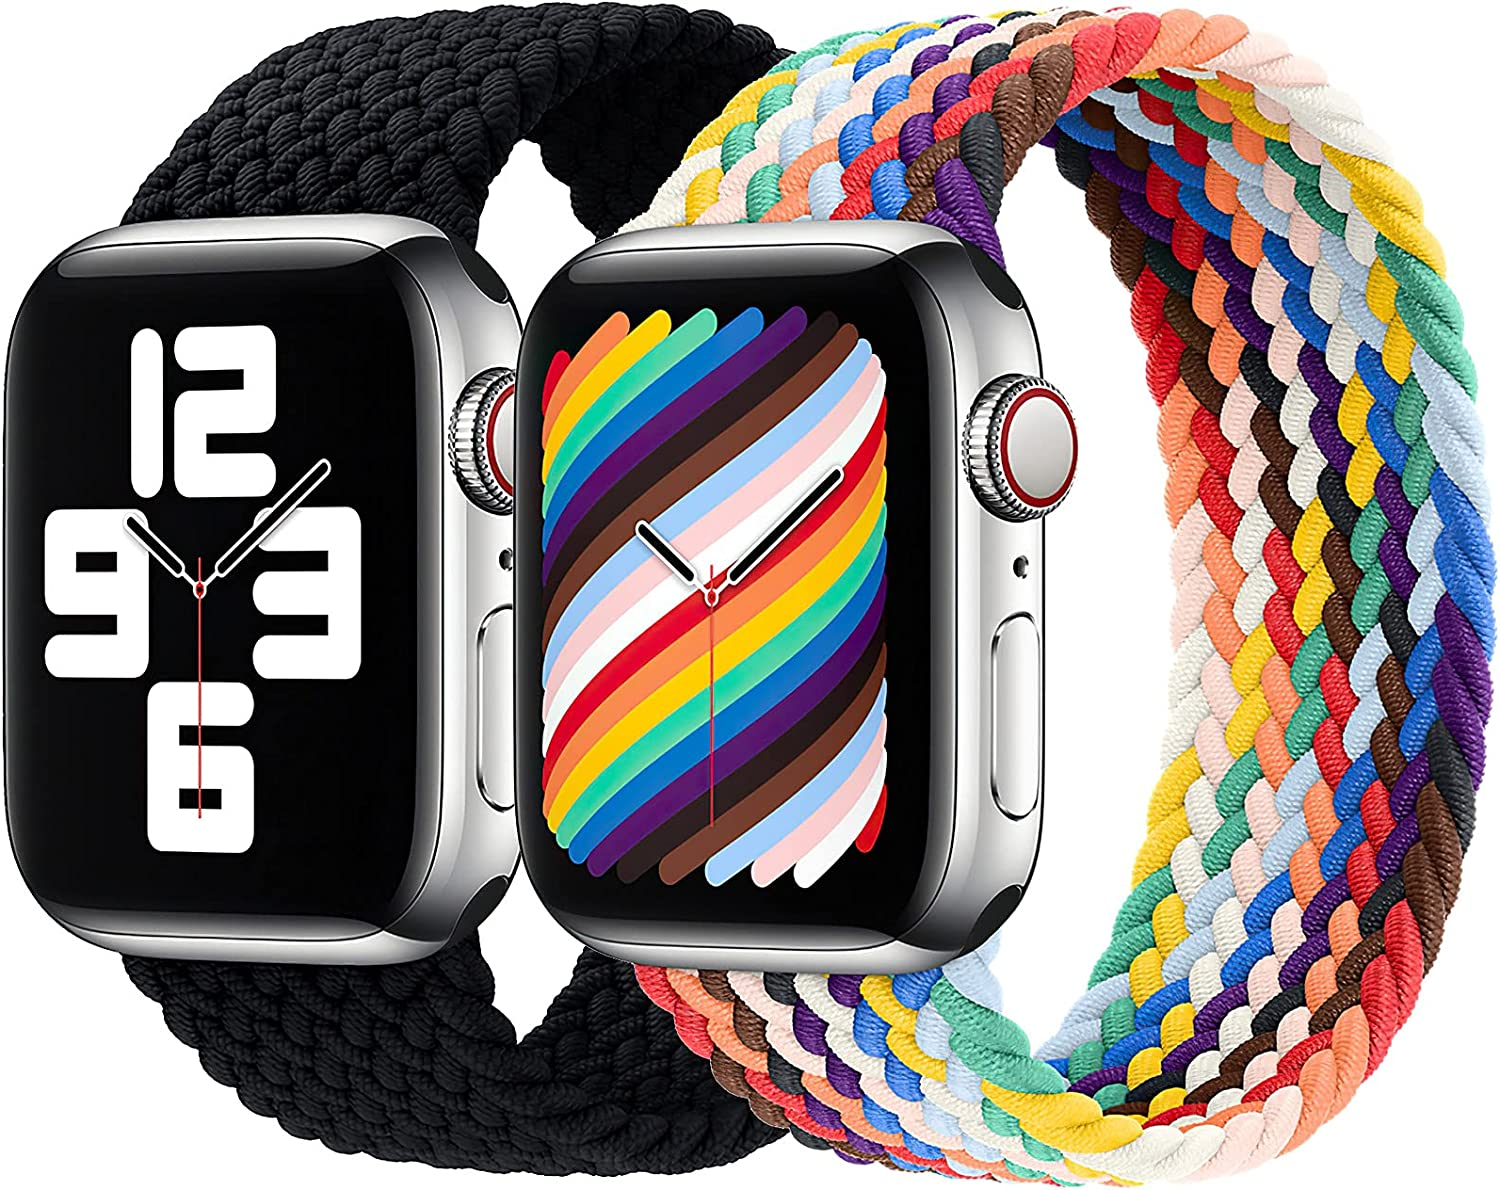 Girovo 2 Packs Solo Loop Strap Compatible with Braided Sport Apple Watch Band 38mm 40mm, Soft Stretchy Braided Wristband for iWatch Series 1/2/3/4/5/6/SE, Charcoal & Pride Edition, M